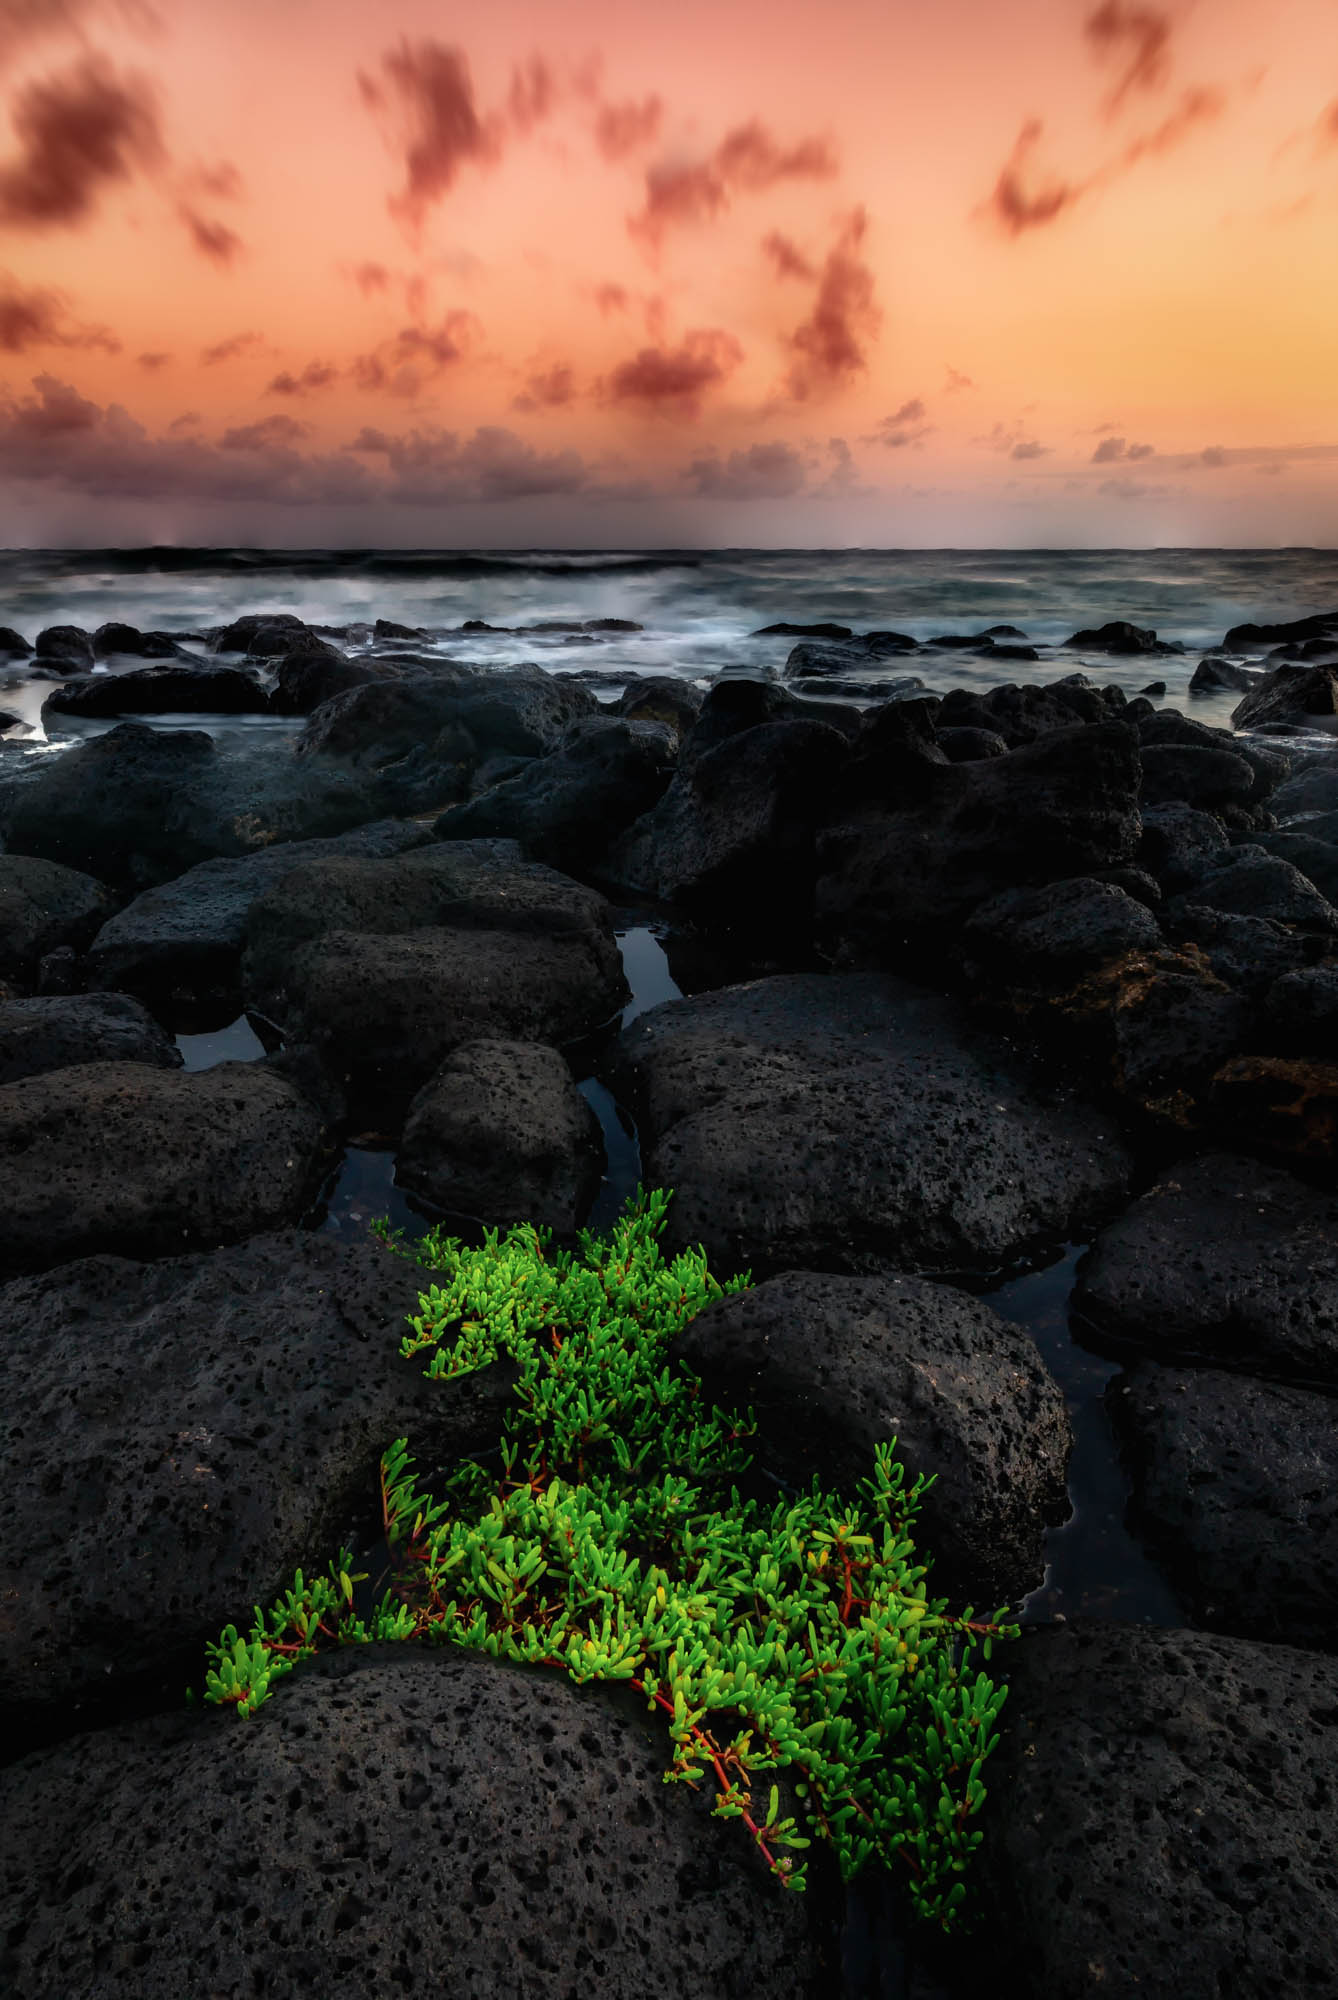 A plant grows in lava rocks under a dramatic sunset looking over the Pacific Ocean. Kauai, Hawaii.